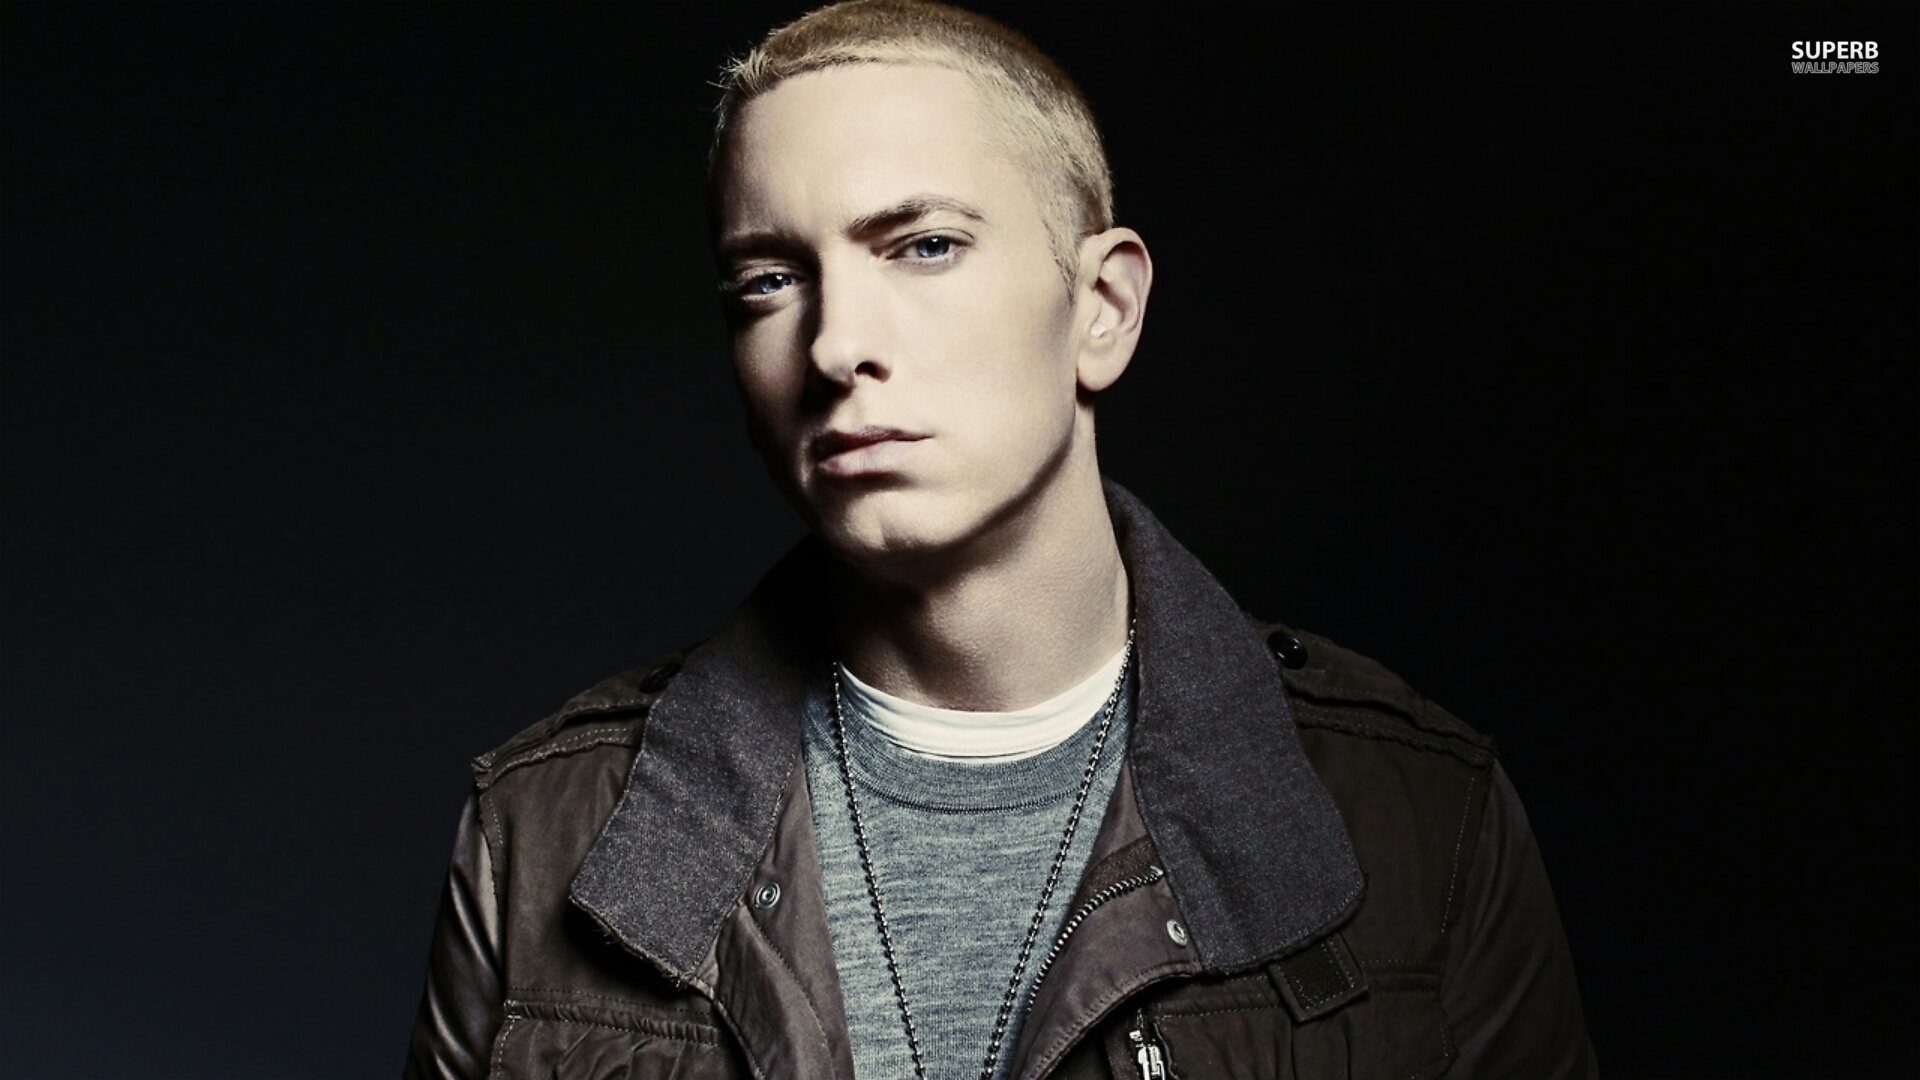 Eminem Wallpapers Pictures Images 1920x1080